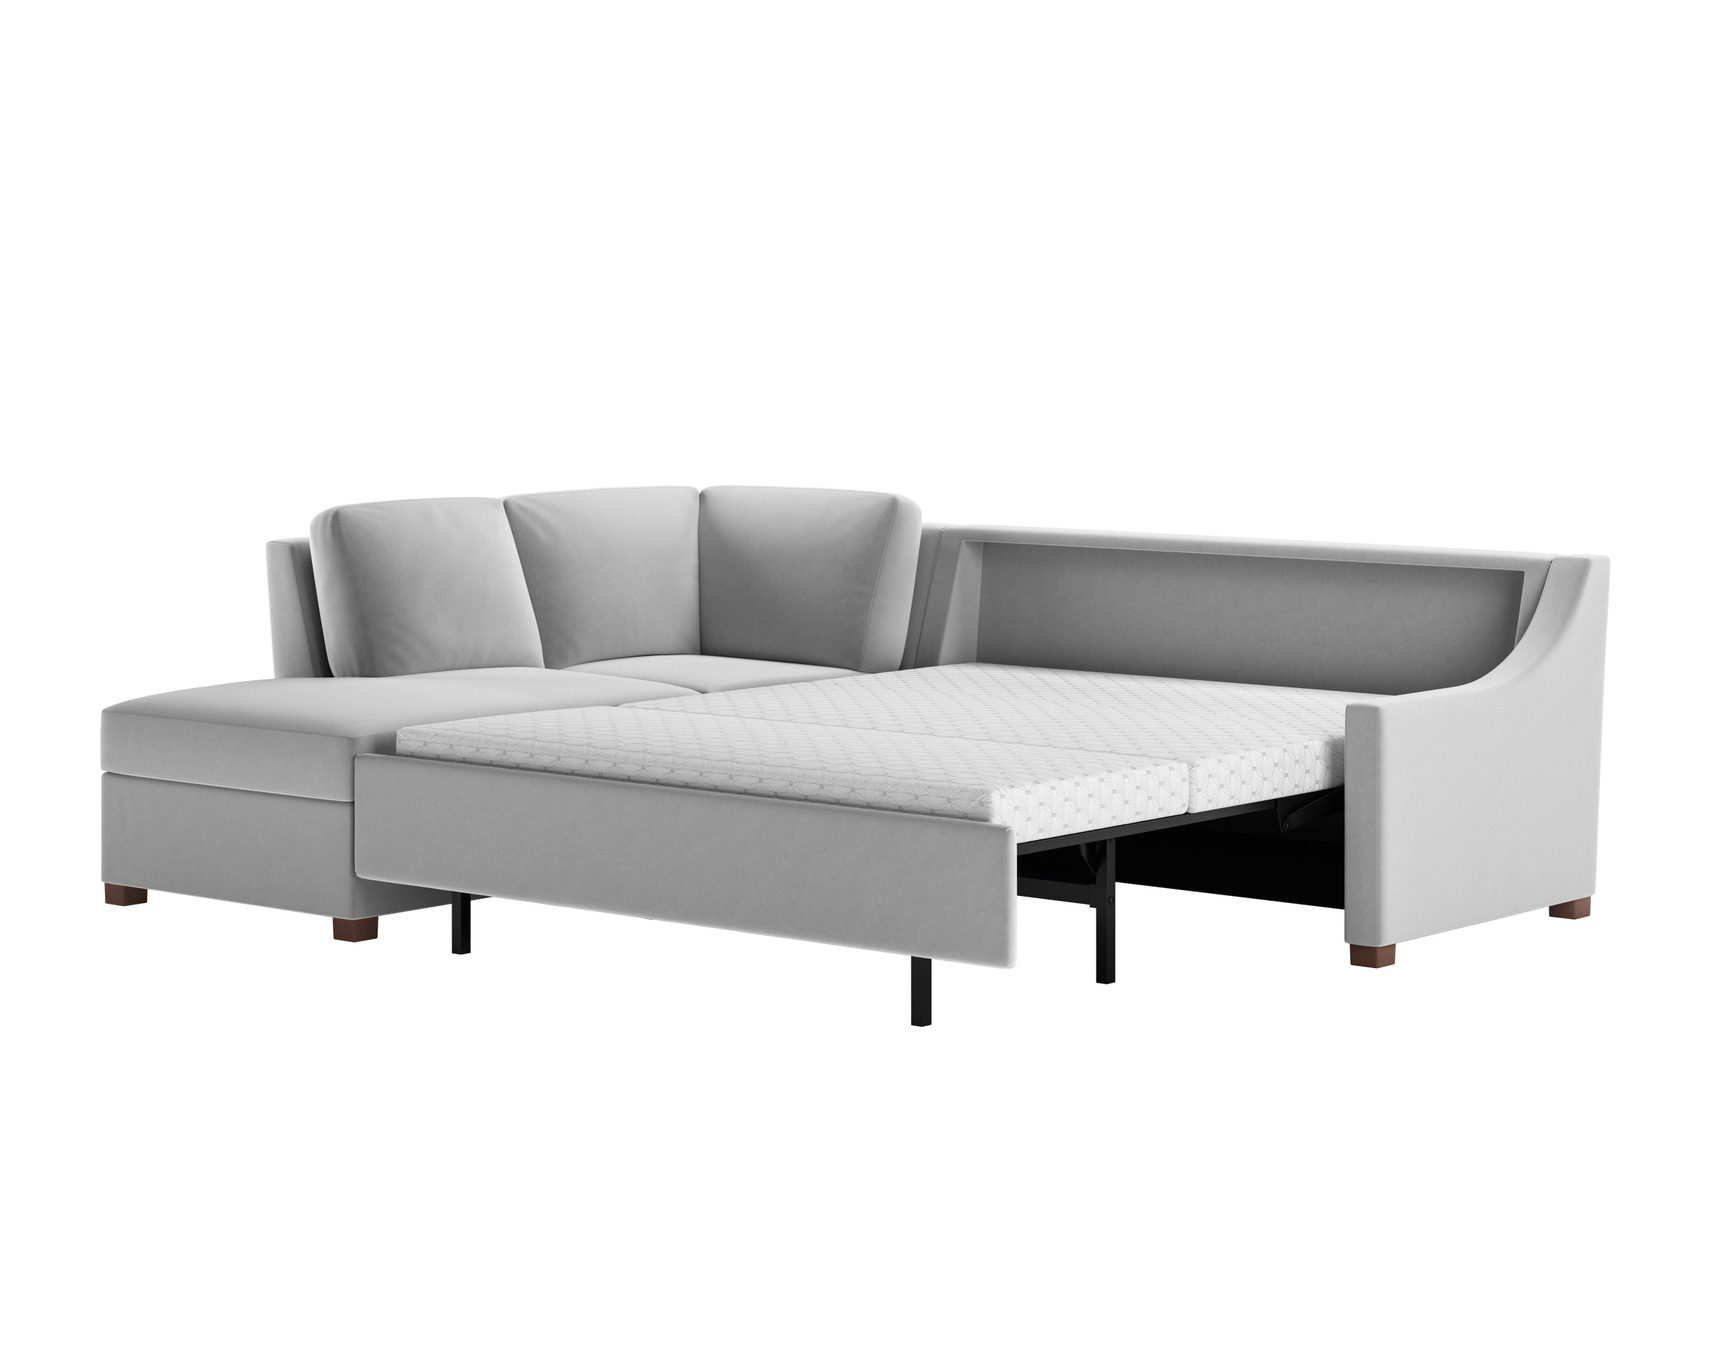 Perry Stylish Sleeper Sectional